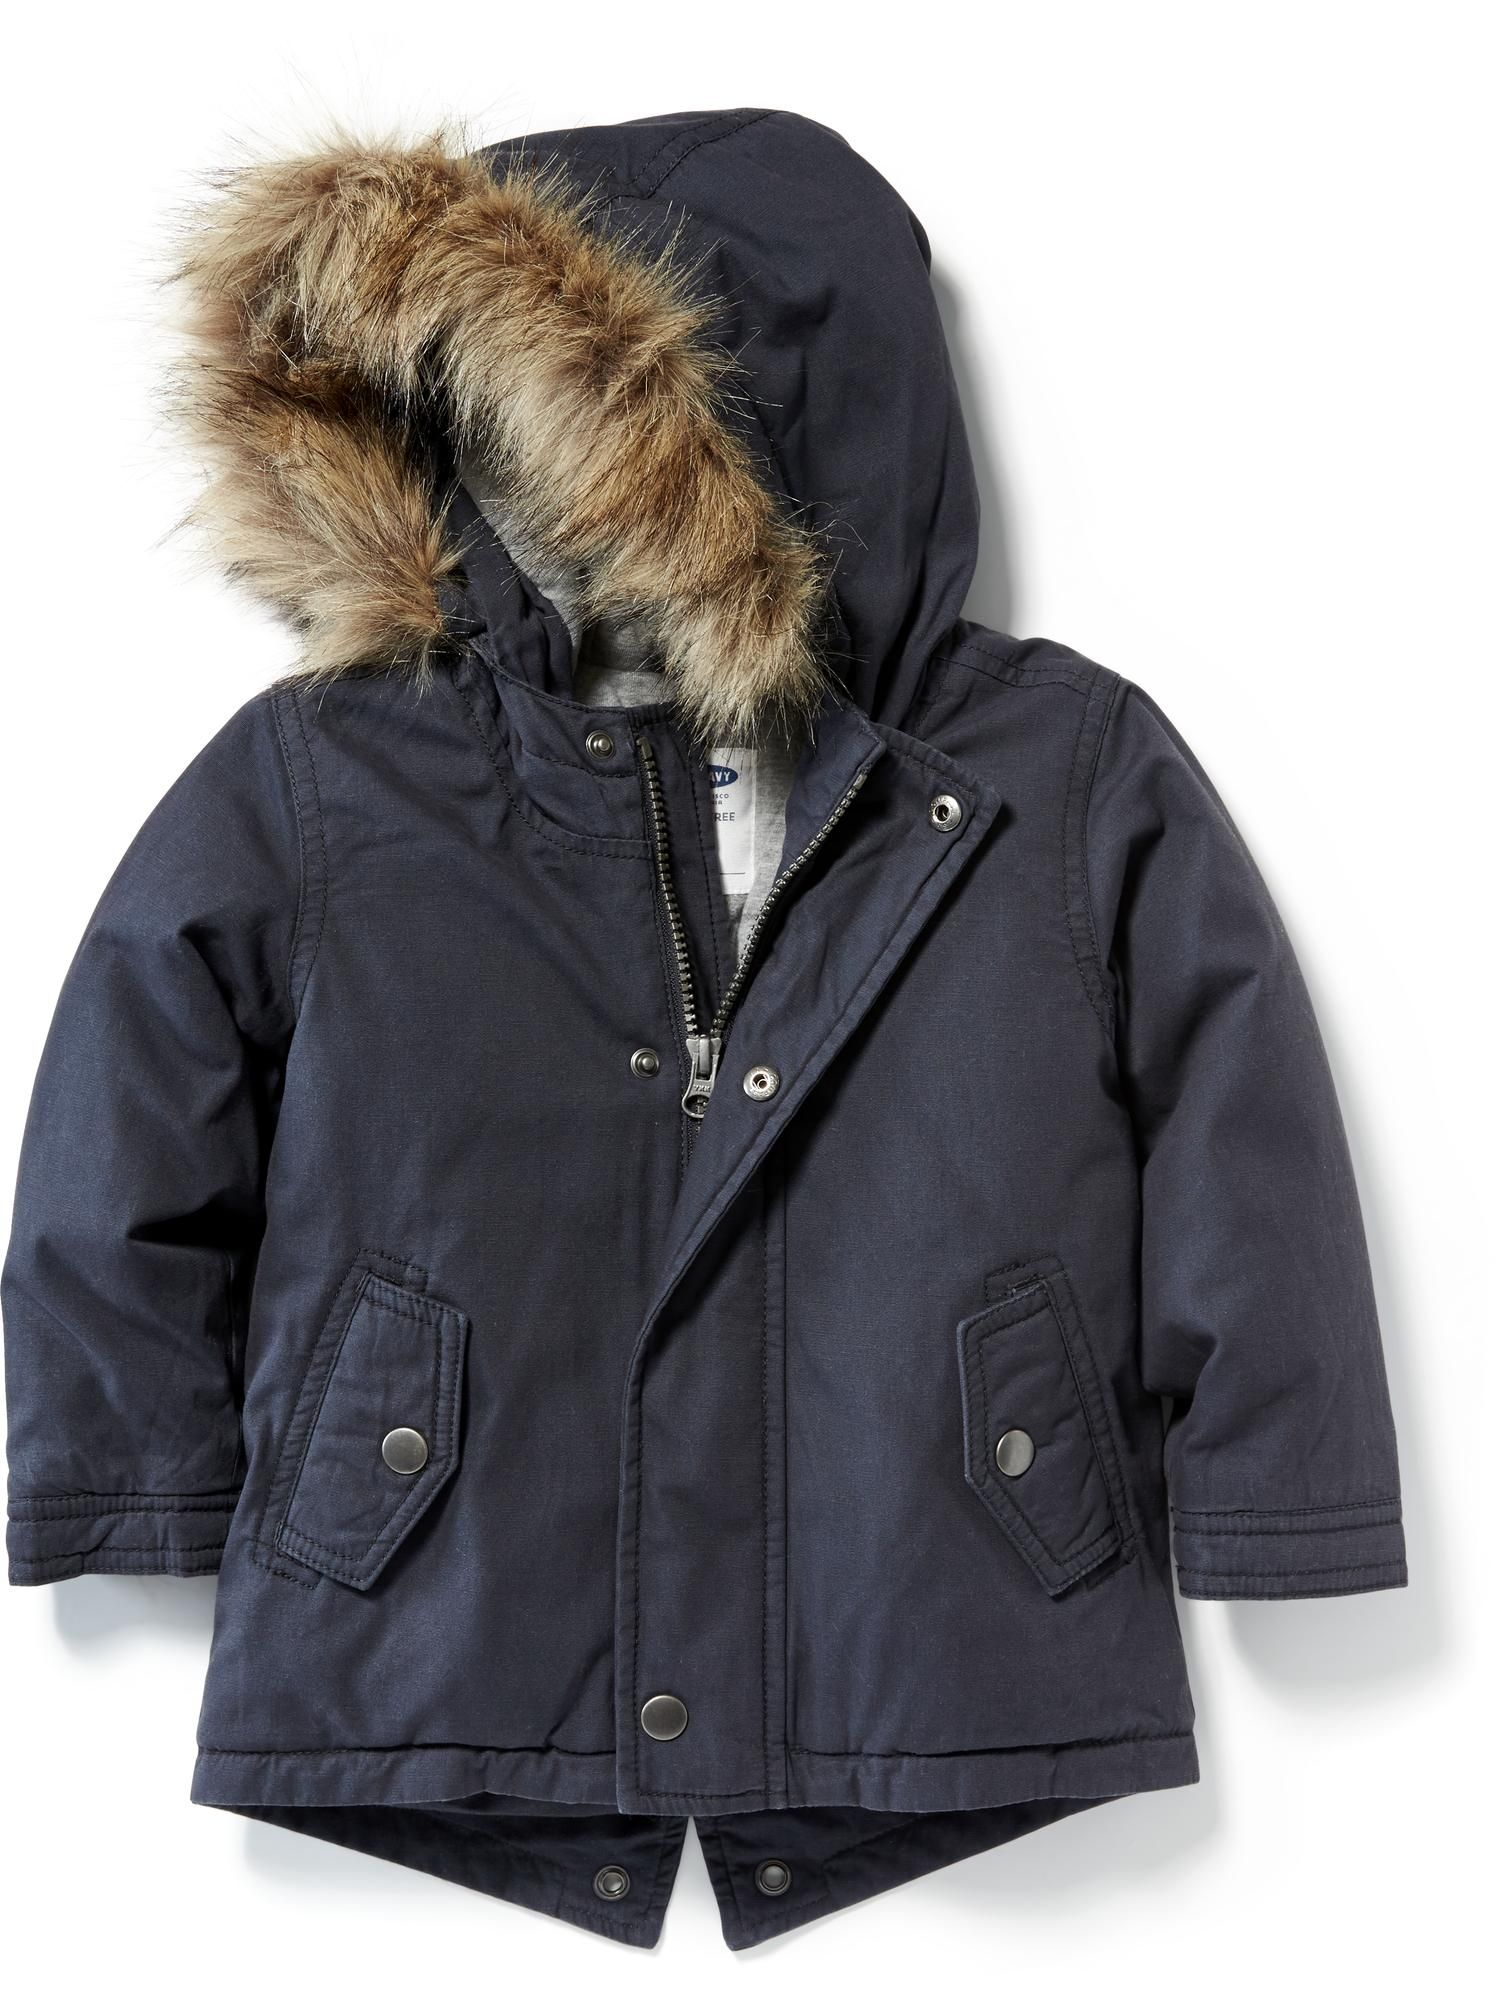 Old navy baby parka